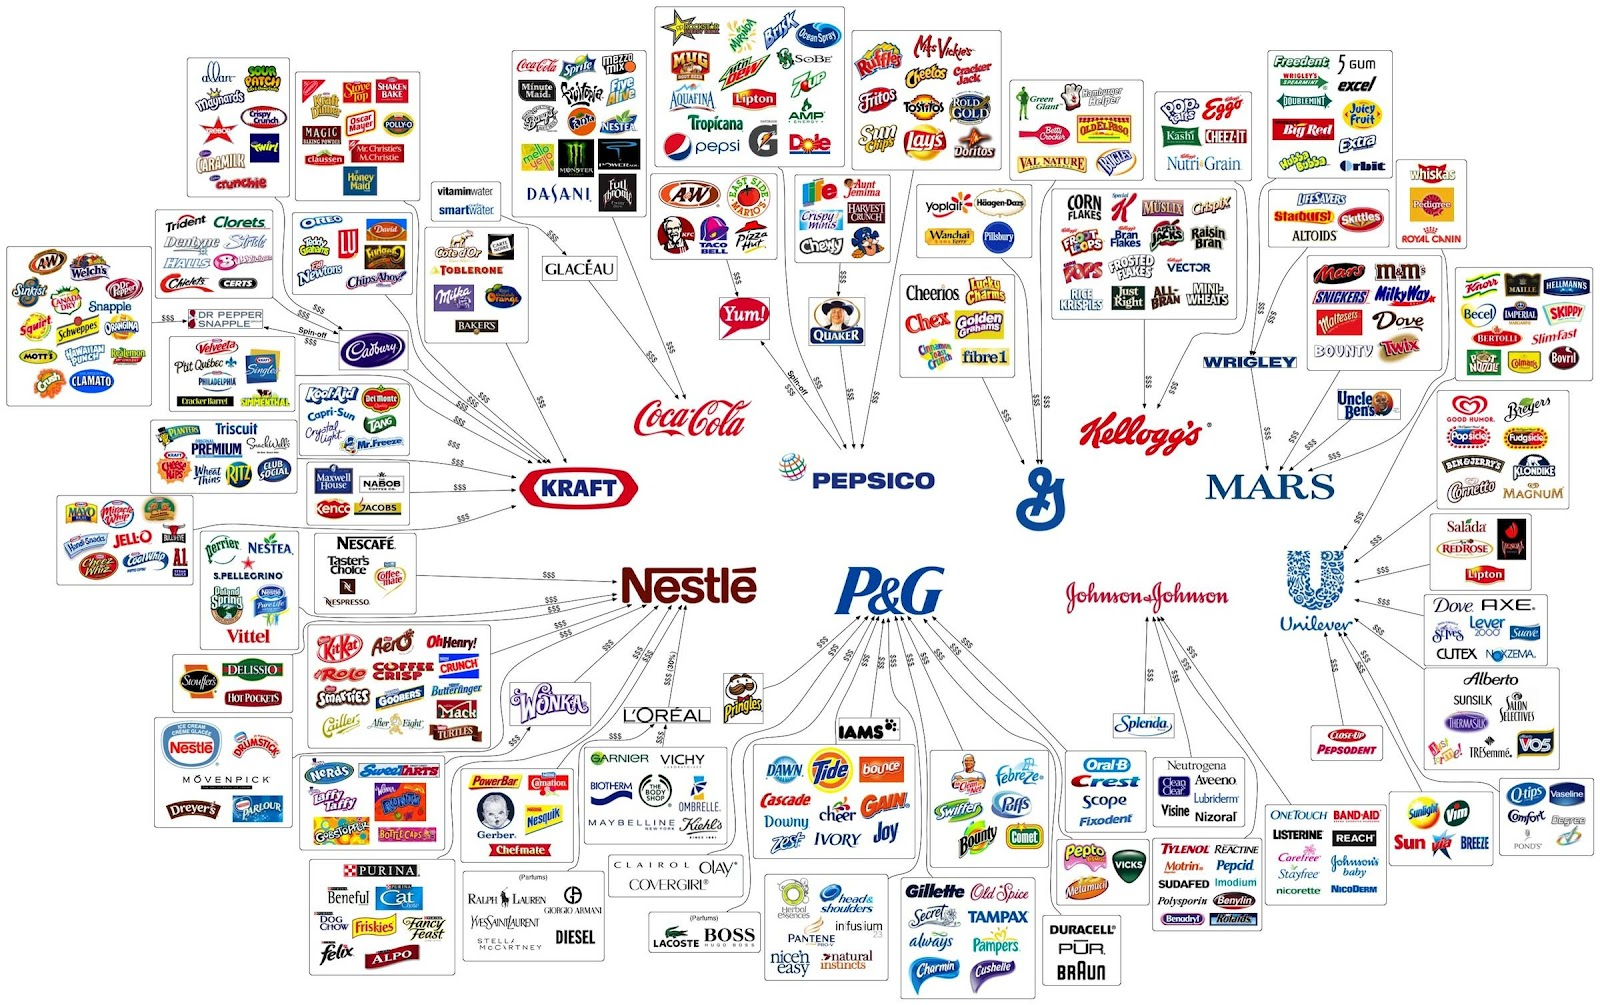 logos popular brand brands sports major part companies map emblem create which branding most mapping collection test rules basic unique